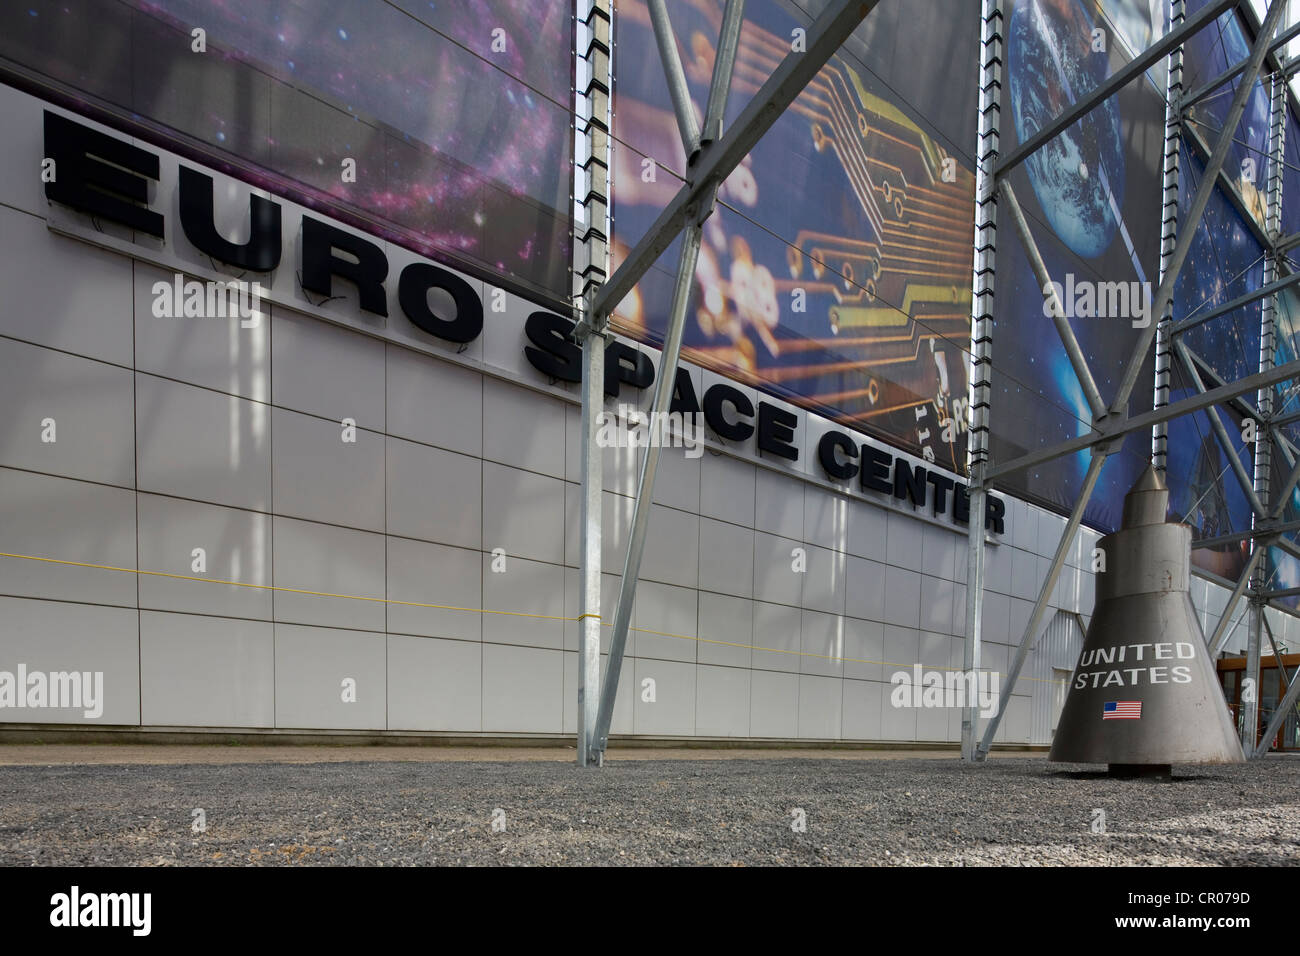 Rockets in the Euro Space Center at Transinne, Luxembourg, Belgian Ardennes, Belgium - Stock Image